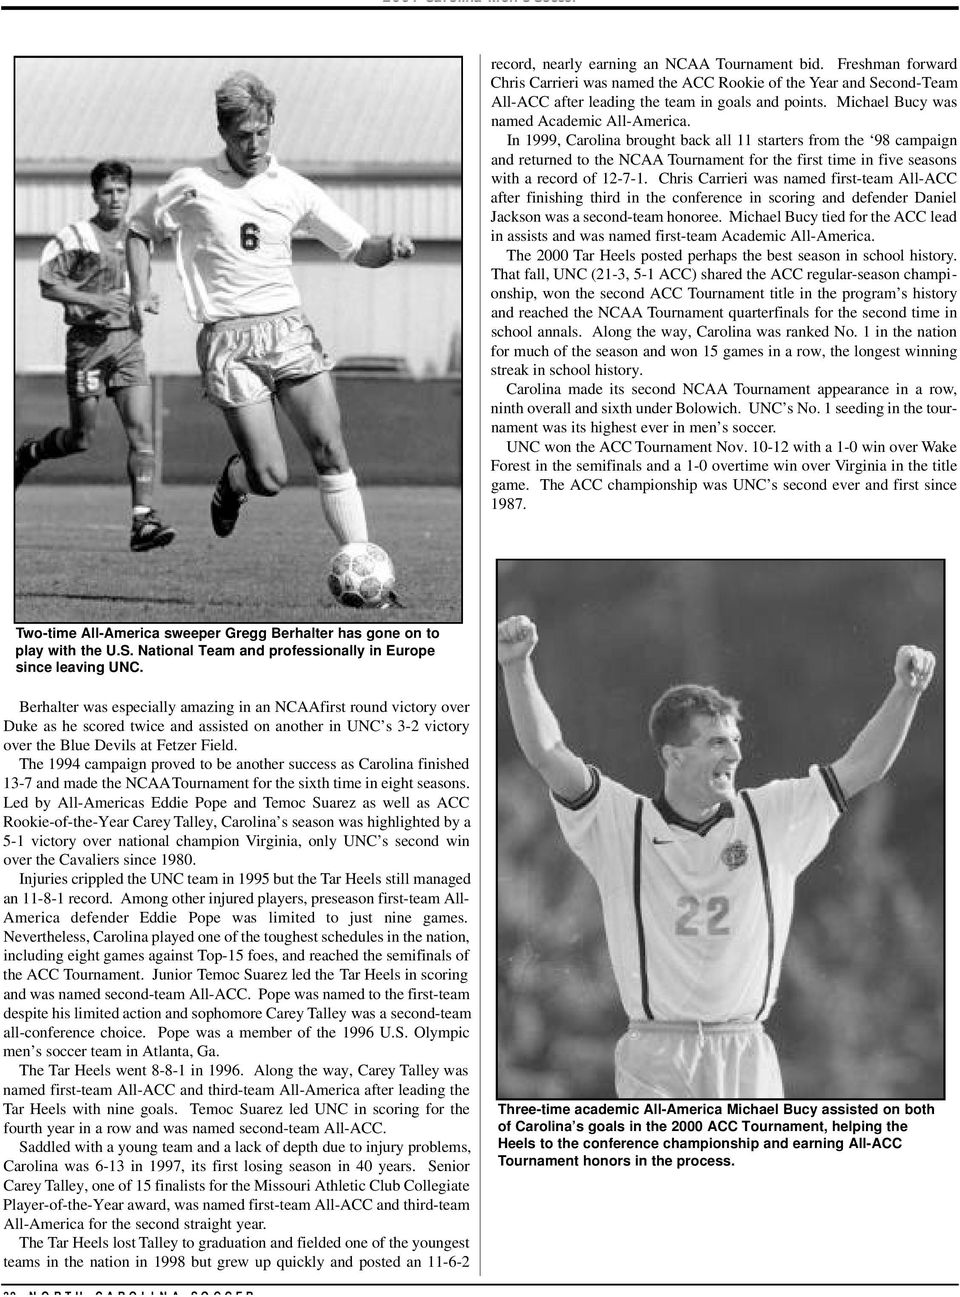 In 1999, Carolina brought back all 11 starters from the 98 campaign and returned to the NCAA Tournament for the first time in five seasons with a record of 12-7-1.